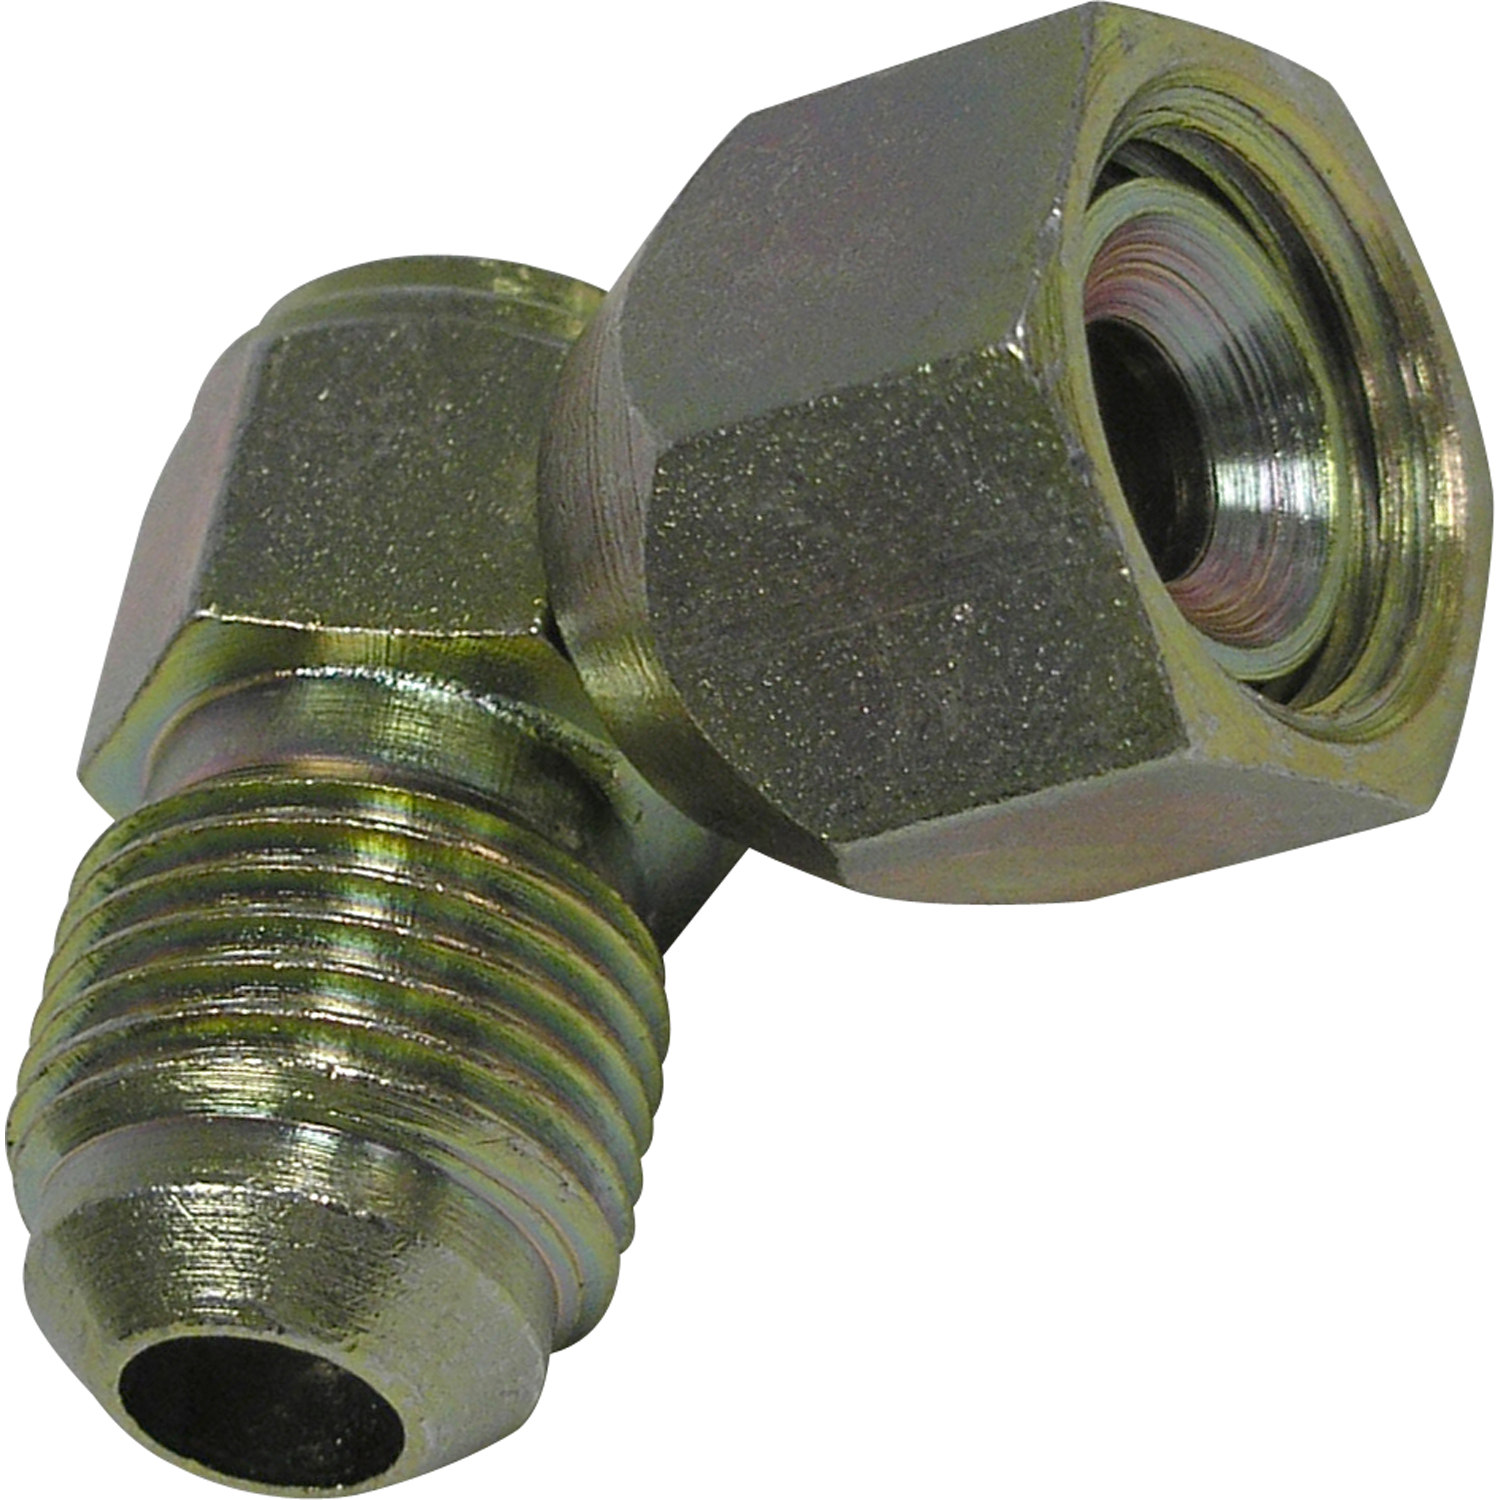 FT 2656 Adapters